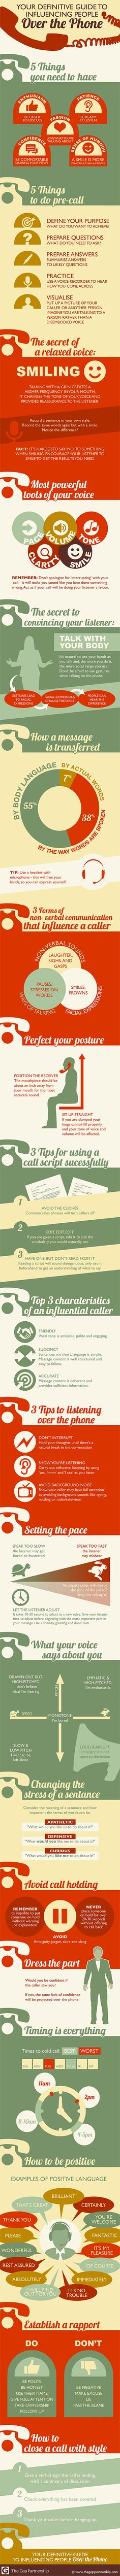 Attention Millennials: How to Excel at the Dying Art of Phone Conversations (Infographic)